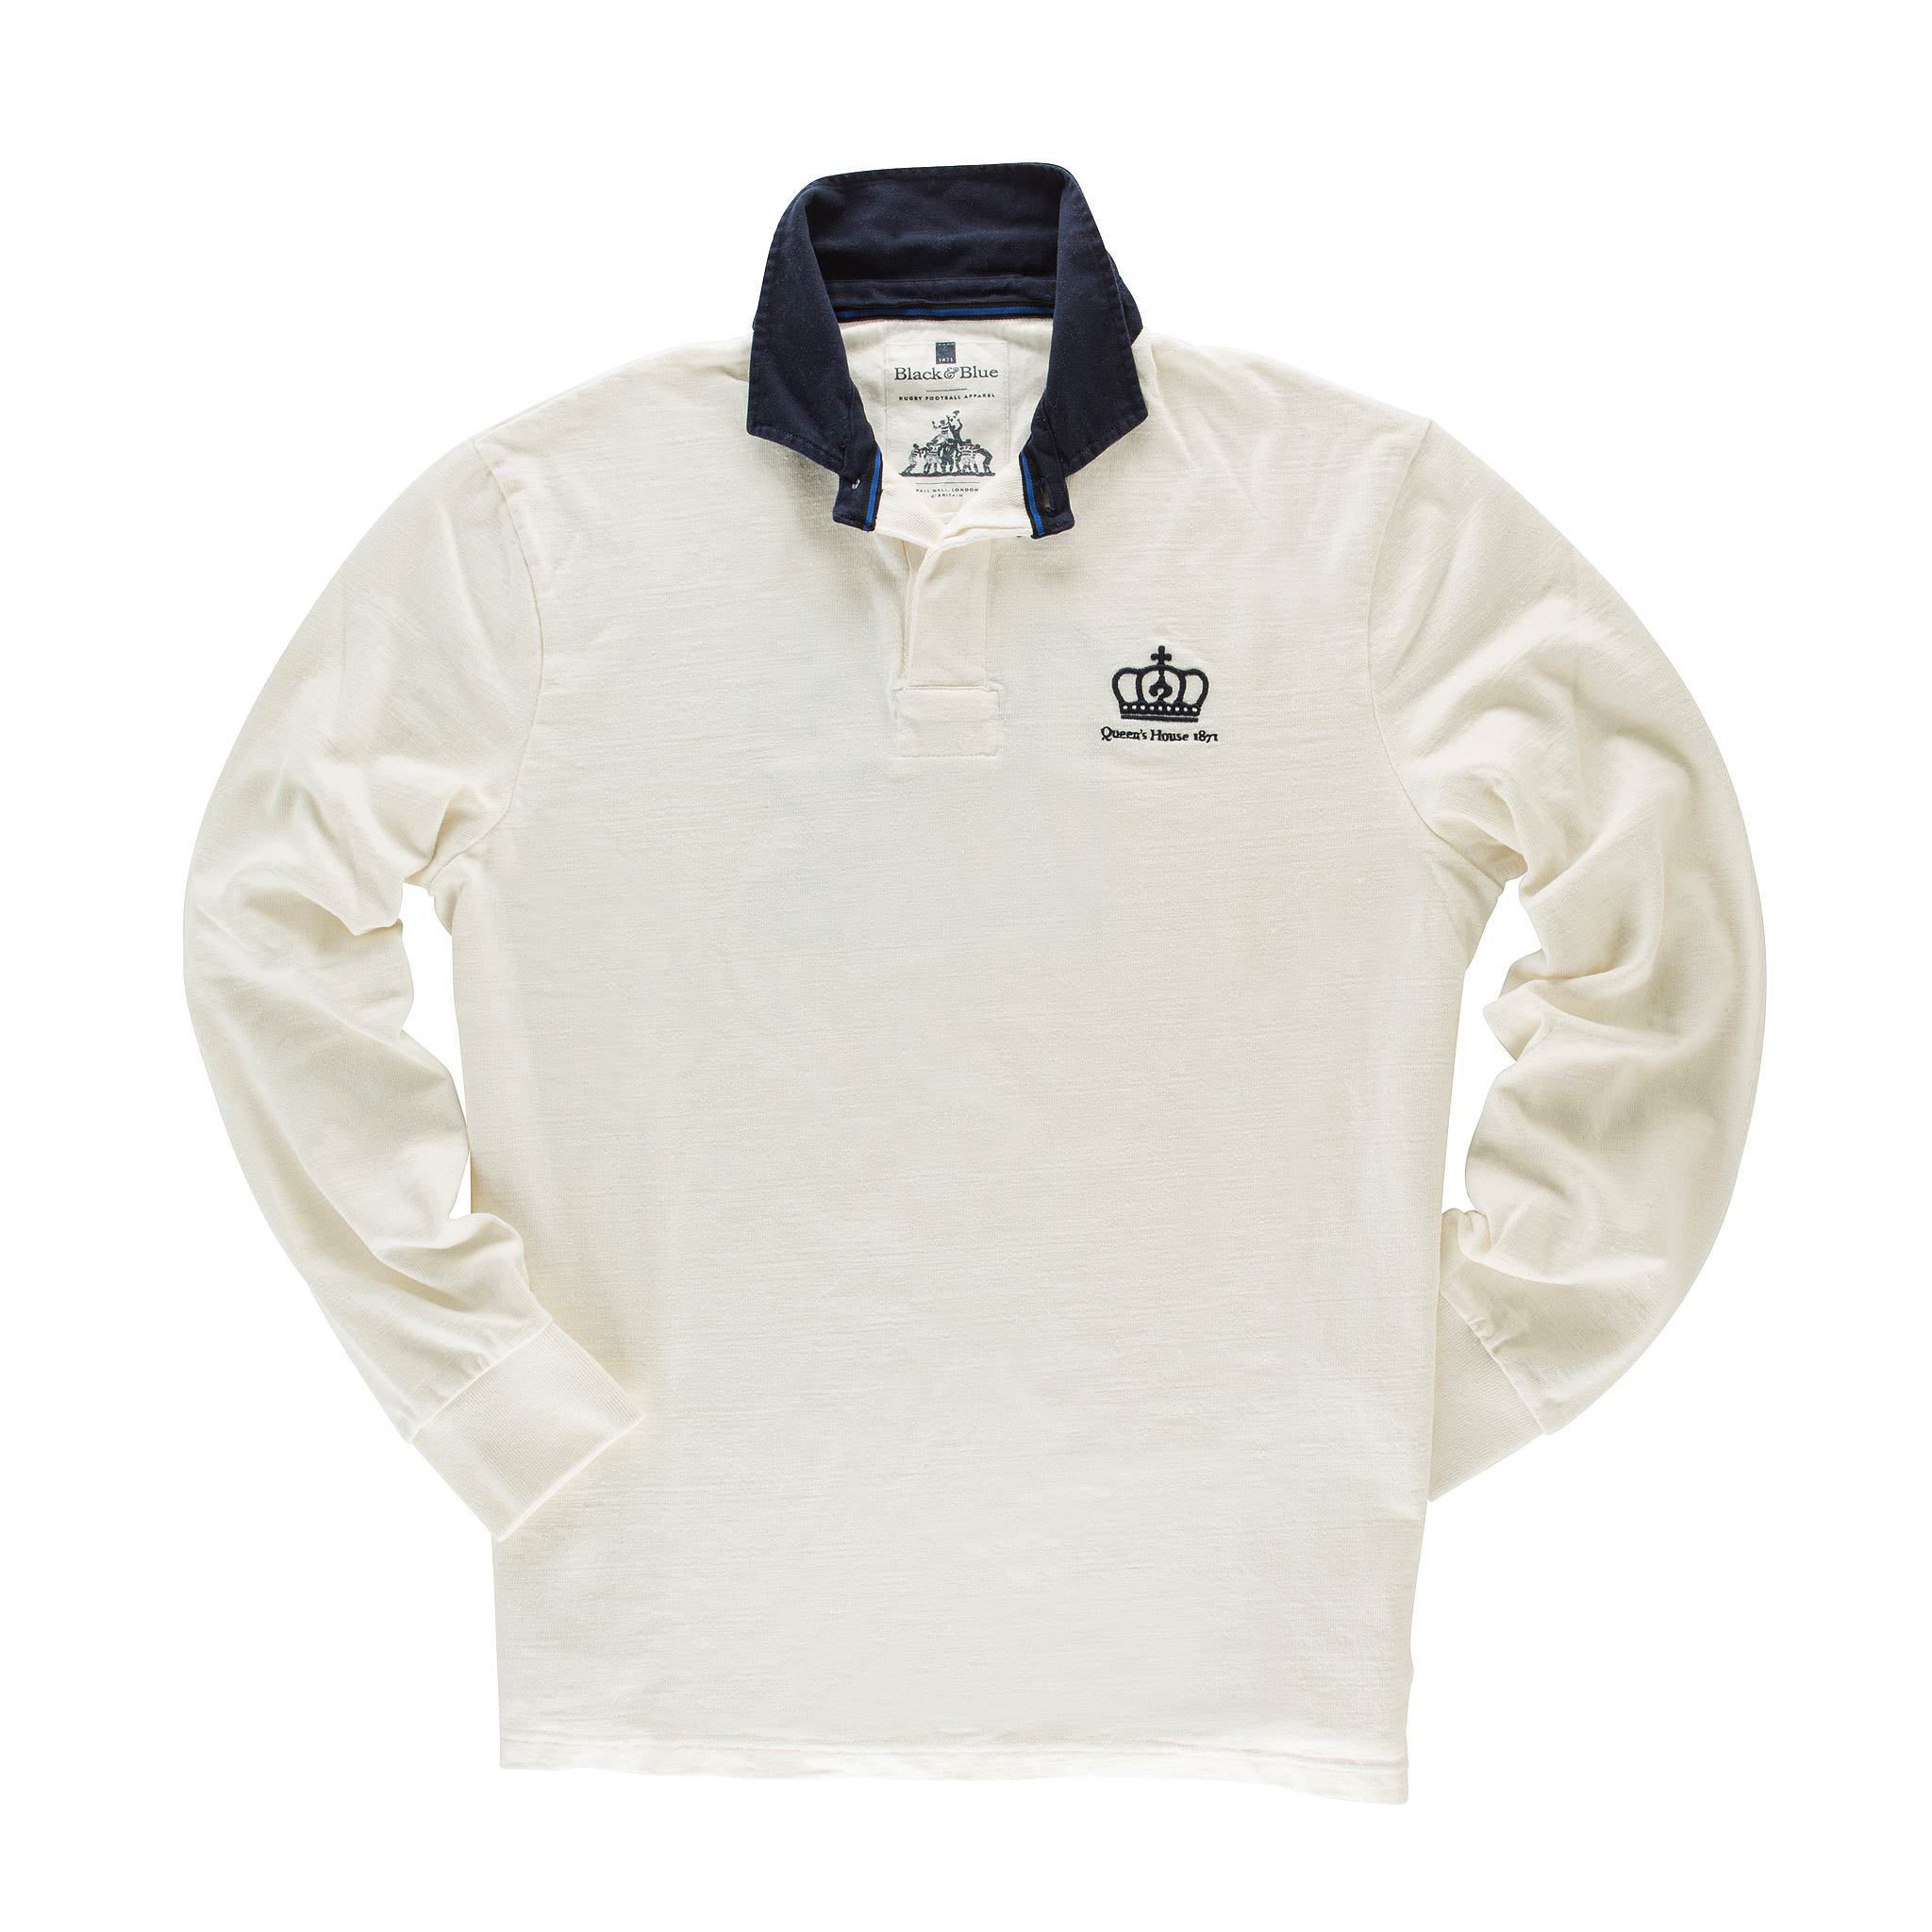 Queen's House 1871 Rugby Shirt - front